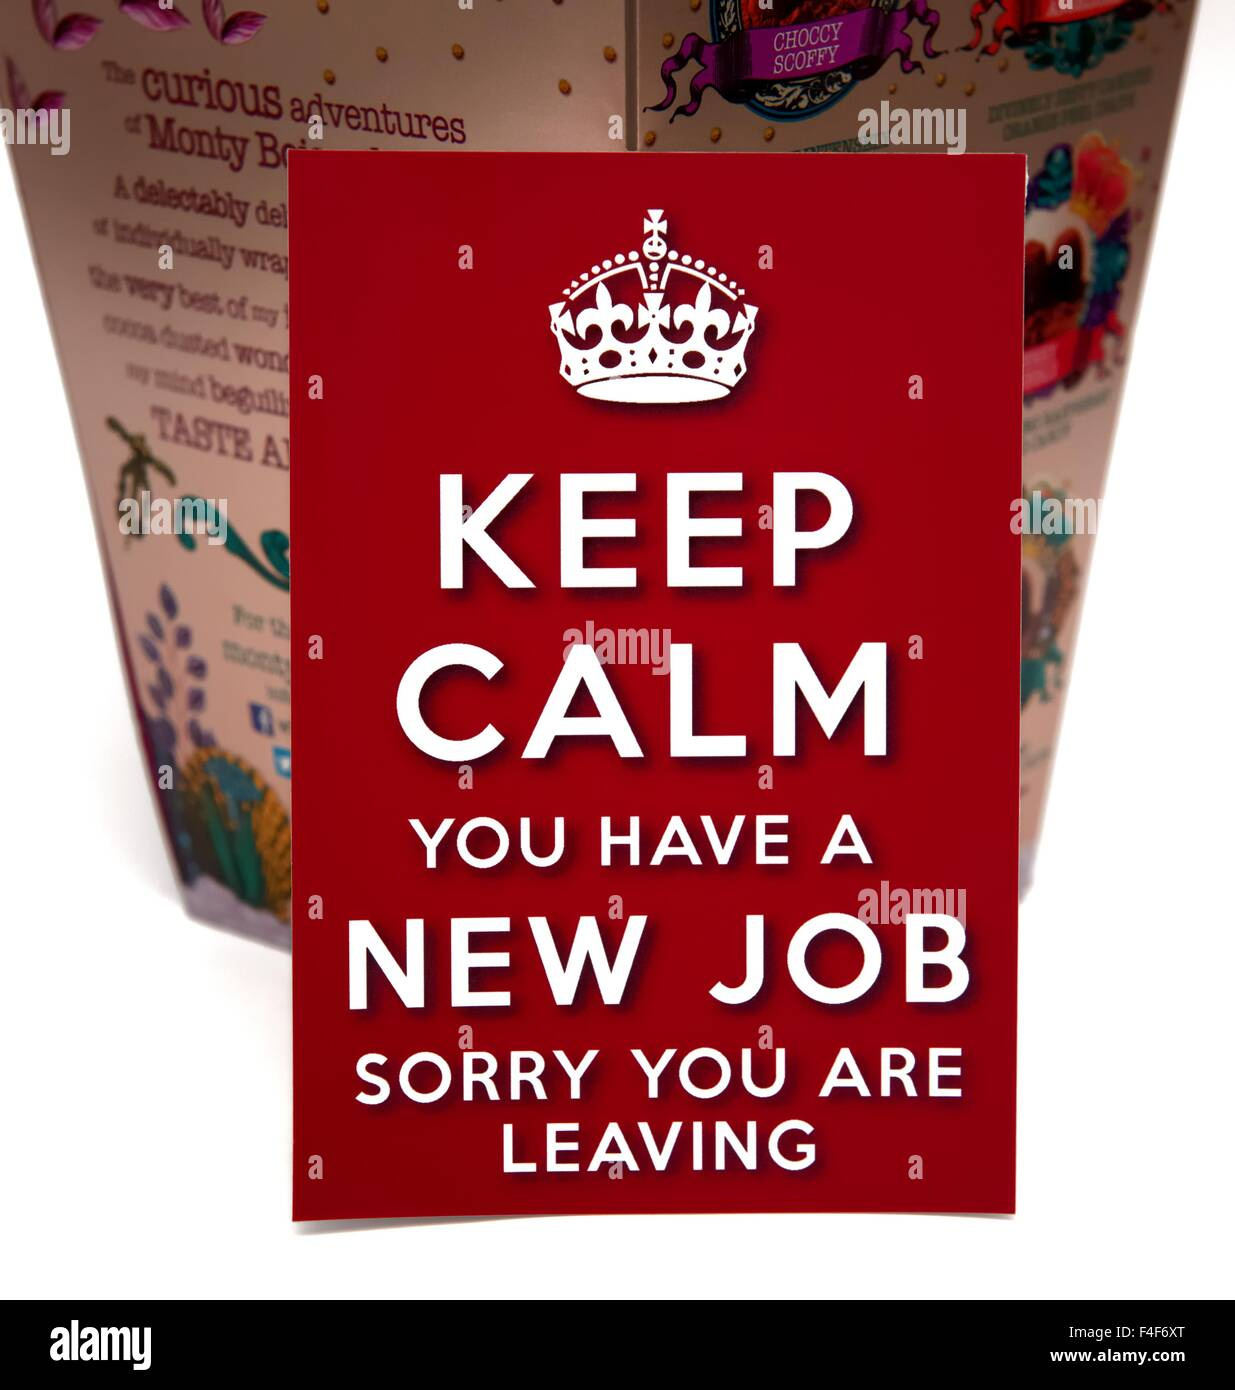 keep calm you have a new job sorry you are leaving sign stock keep calm you have a new job sorry you are leaving sign